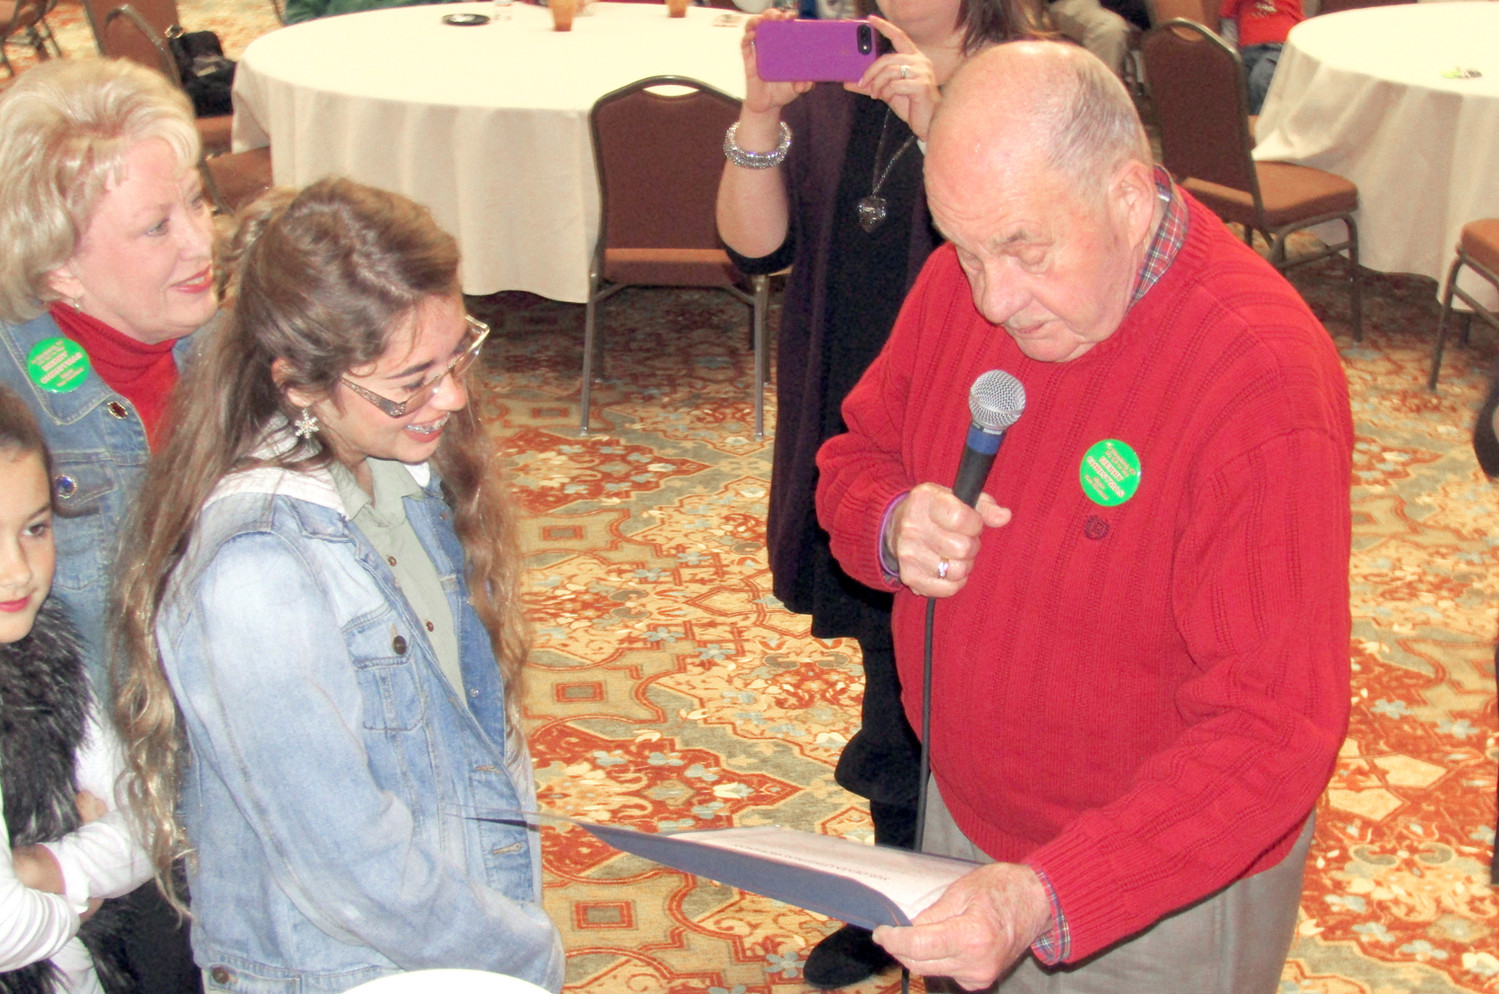 Mayor Tom Rowland, right, presents Olivia Christmas Workman with a certificate making her Mayor for a Day as a result of a special drawing during the Empty Stocking Fund drive. At left is first lady Sandra Rowland.